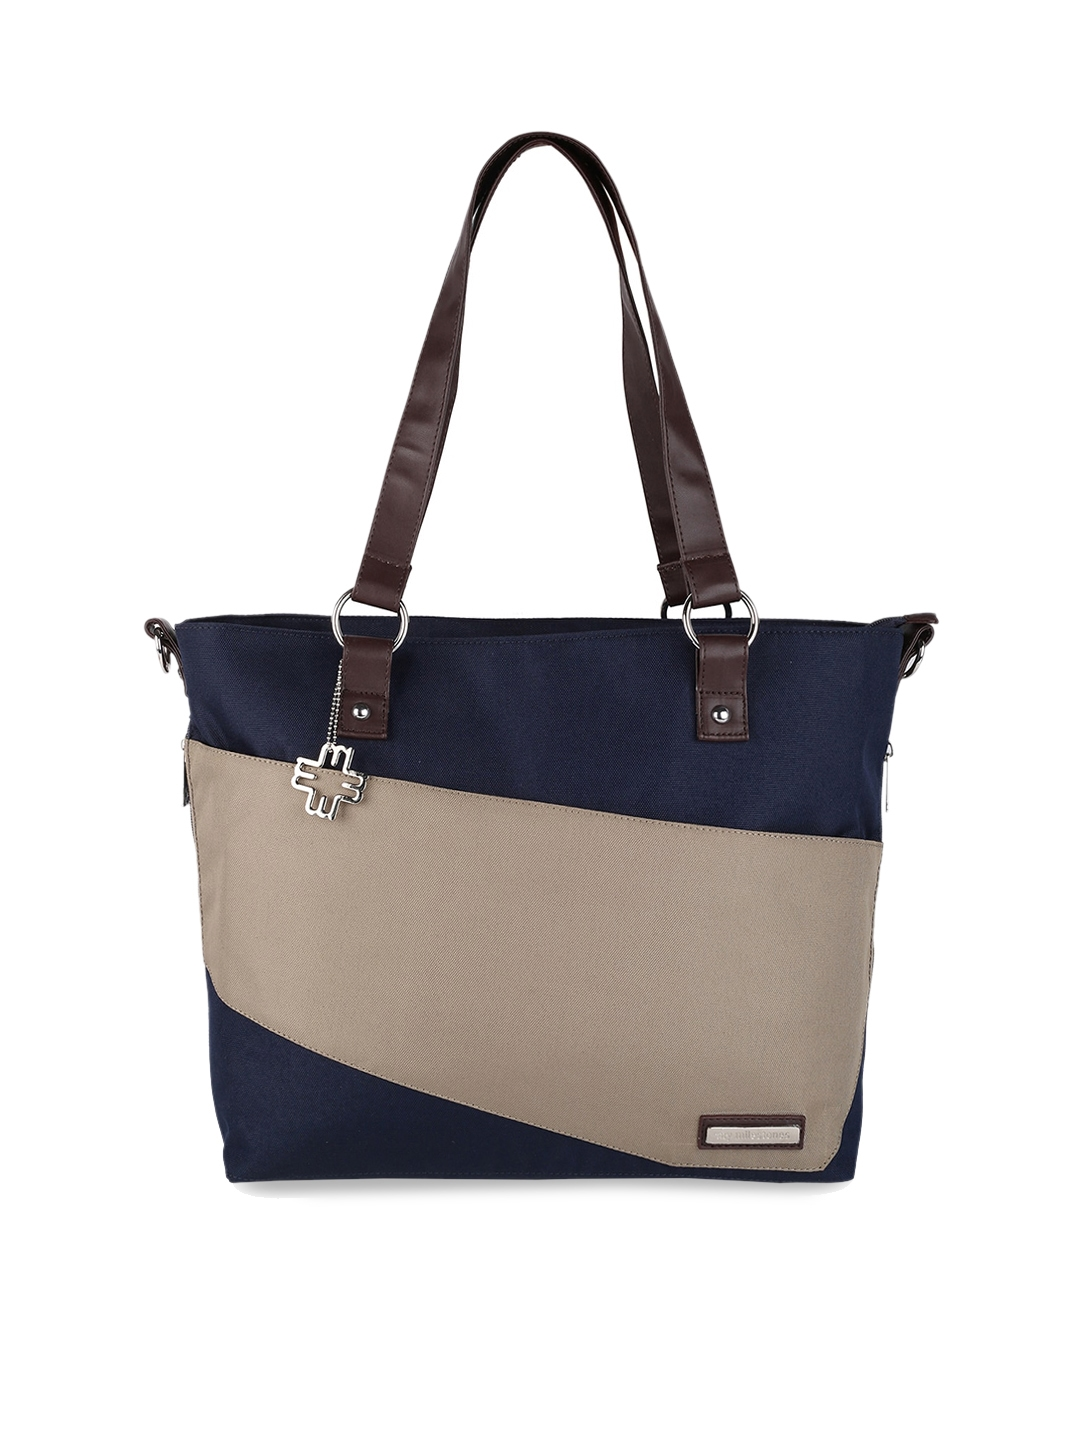 My Milestones Taupe   Navy Blue Colourblocked Diaper Bag with Changing Mat   Bottle Holder